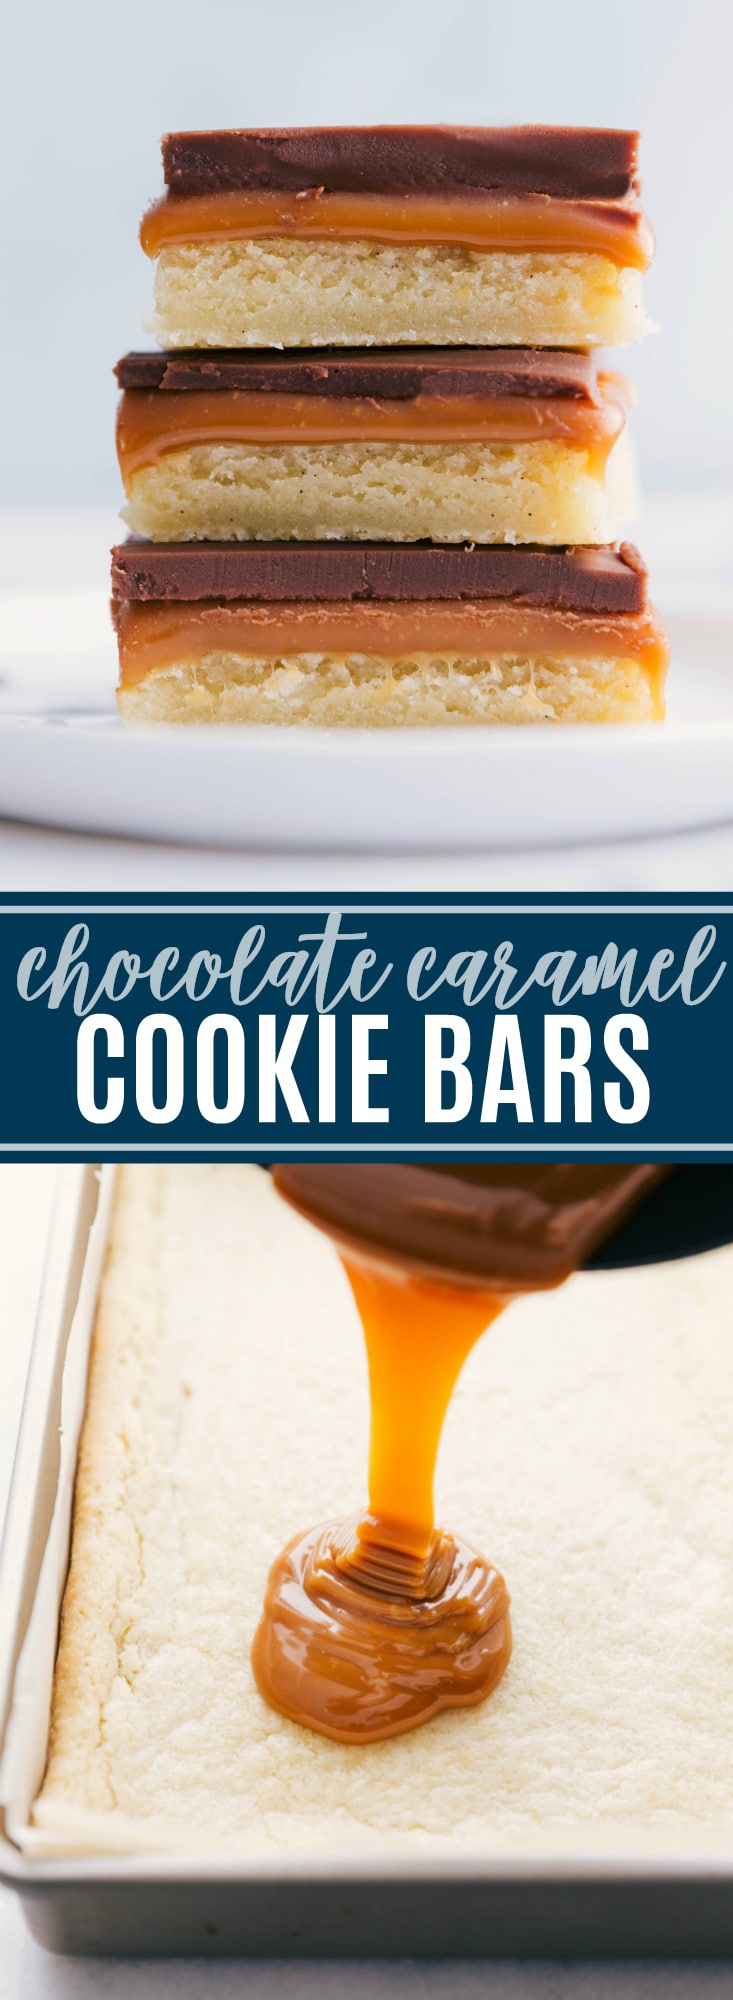 A delectable, homemade twix bar with a soft & chewy sugar cookie base, creamy caramel center, and a velvety smooth chocolate topping. via chelseasmessyapron.com #dessert #twix #bar #easy #quick #caramel #chocolate #sugar #cookie #bar